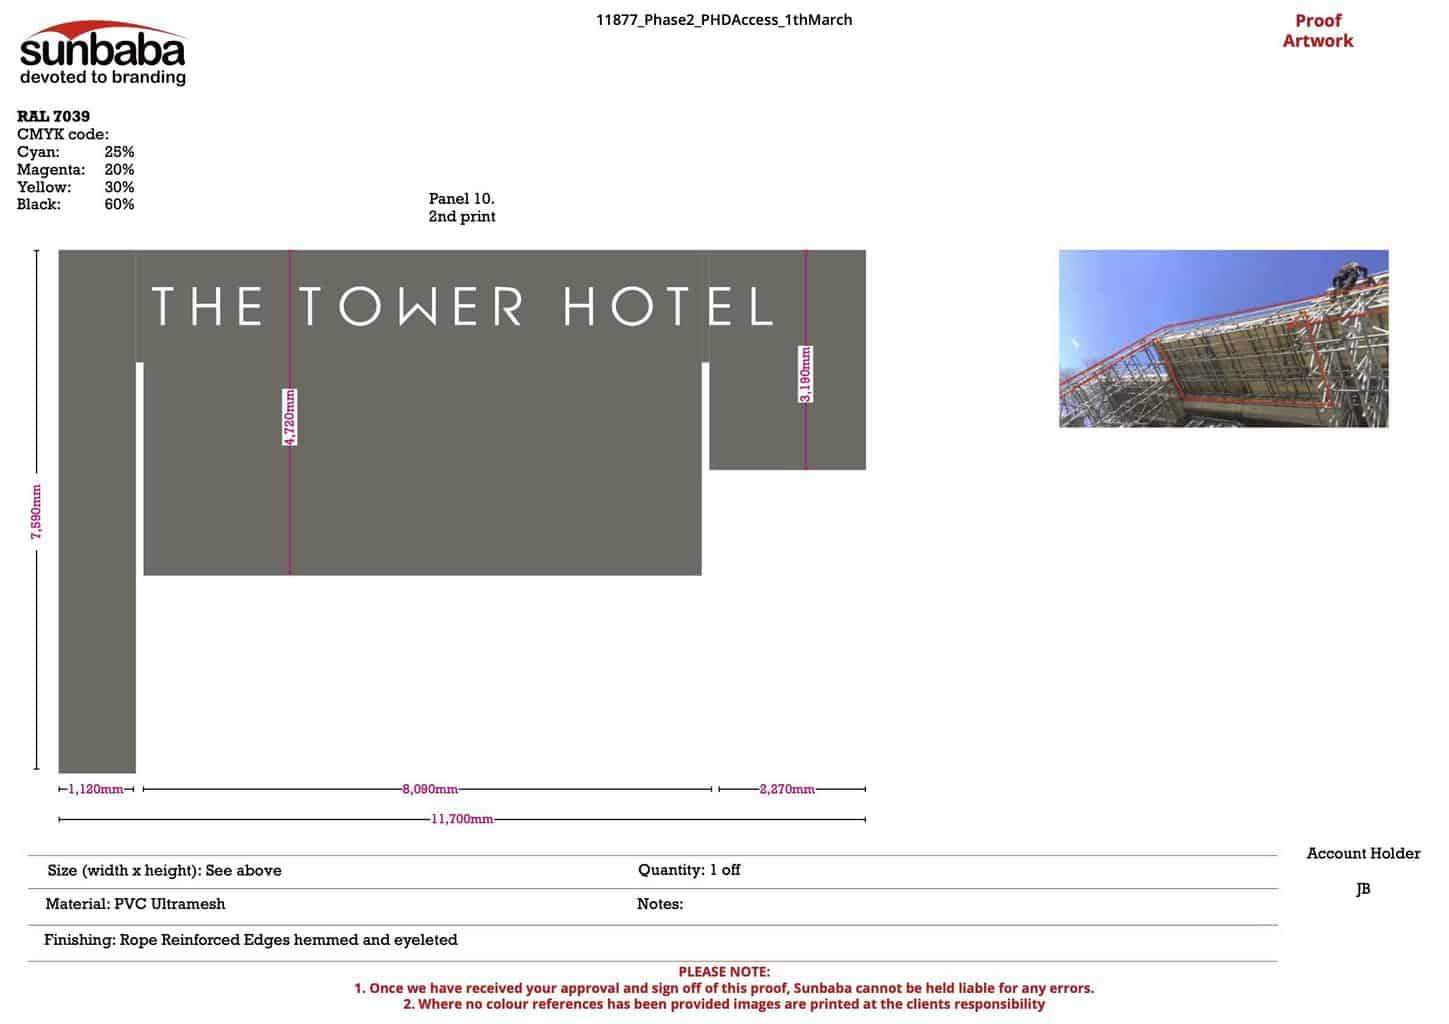 Tower Hotel Proof